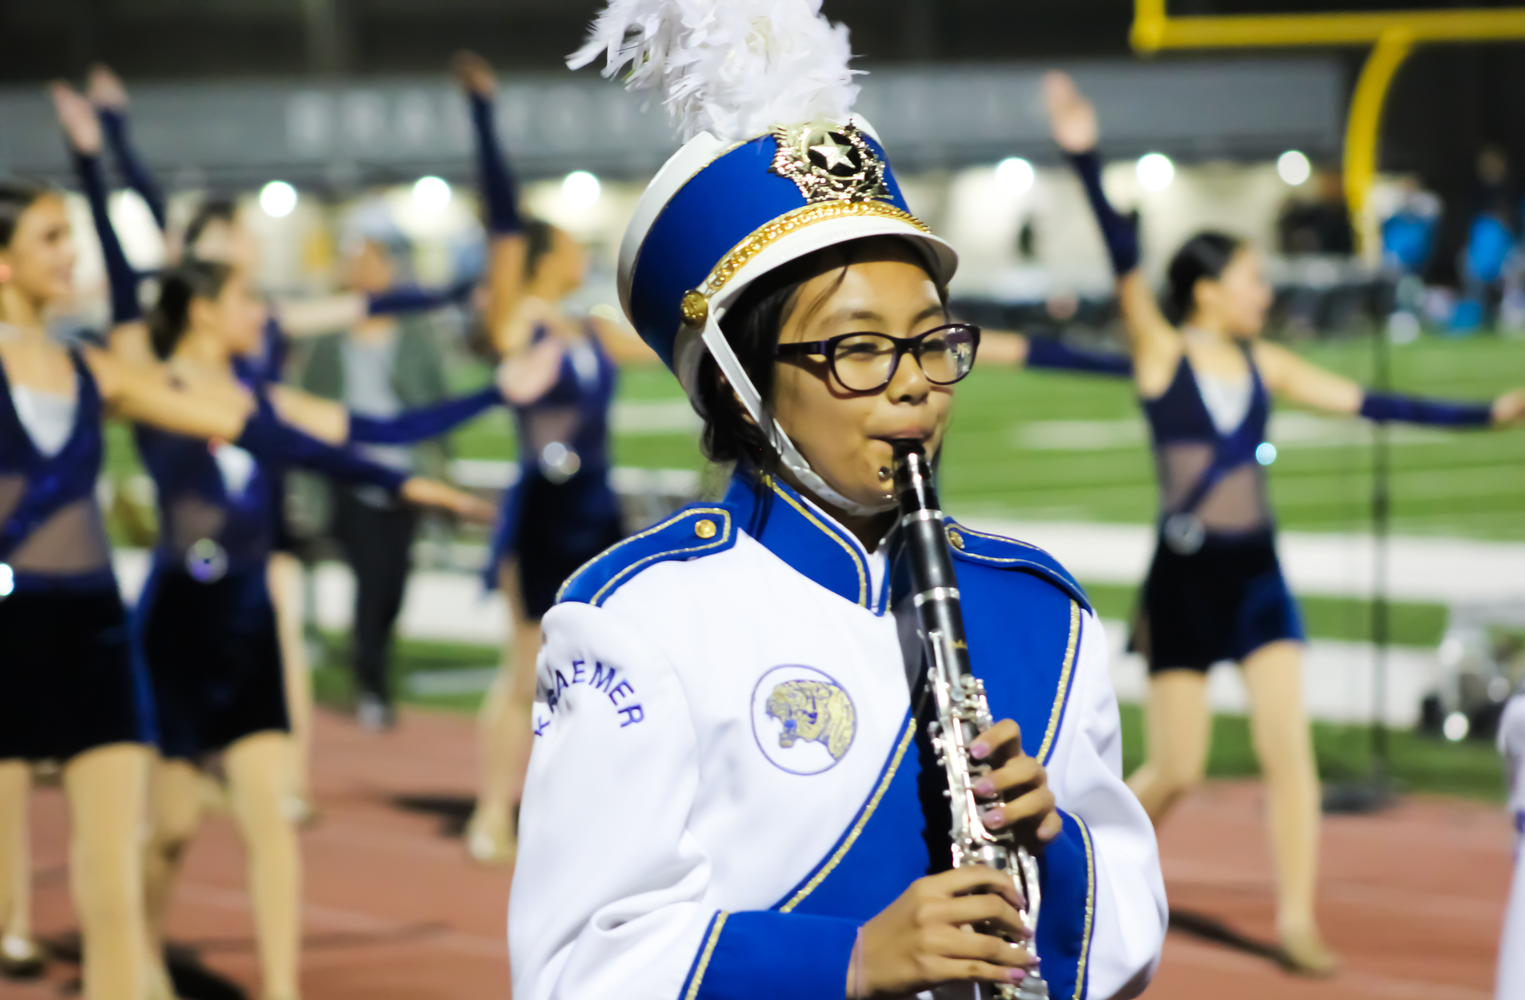 A student playing the clarinet.